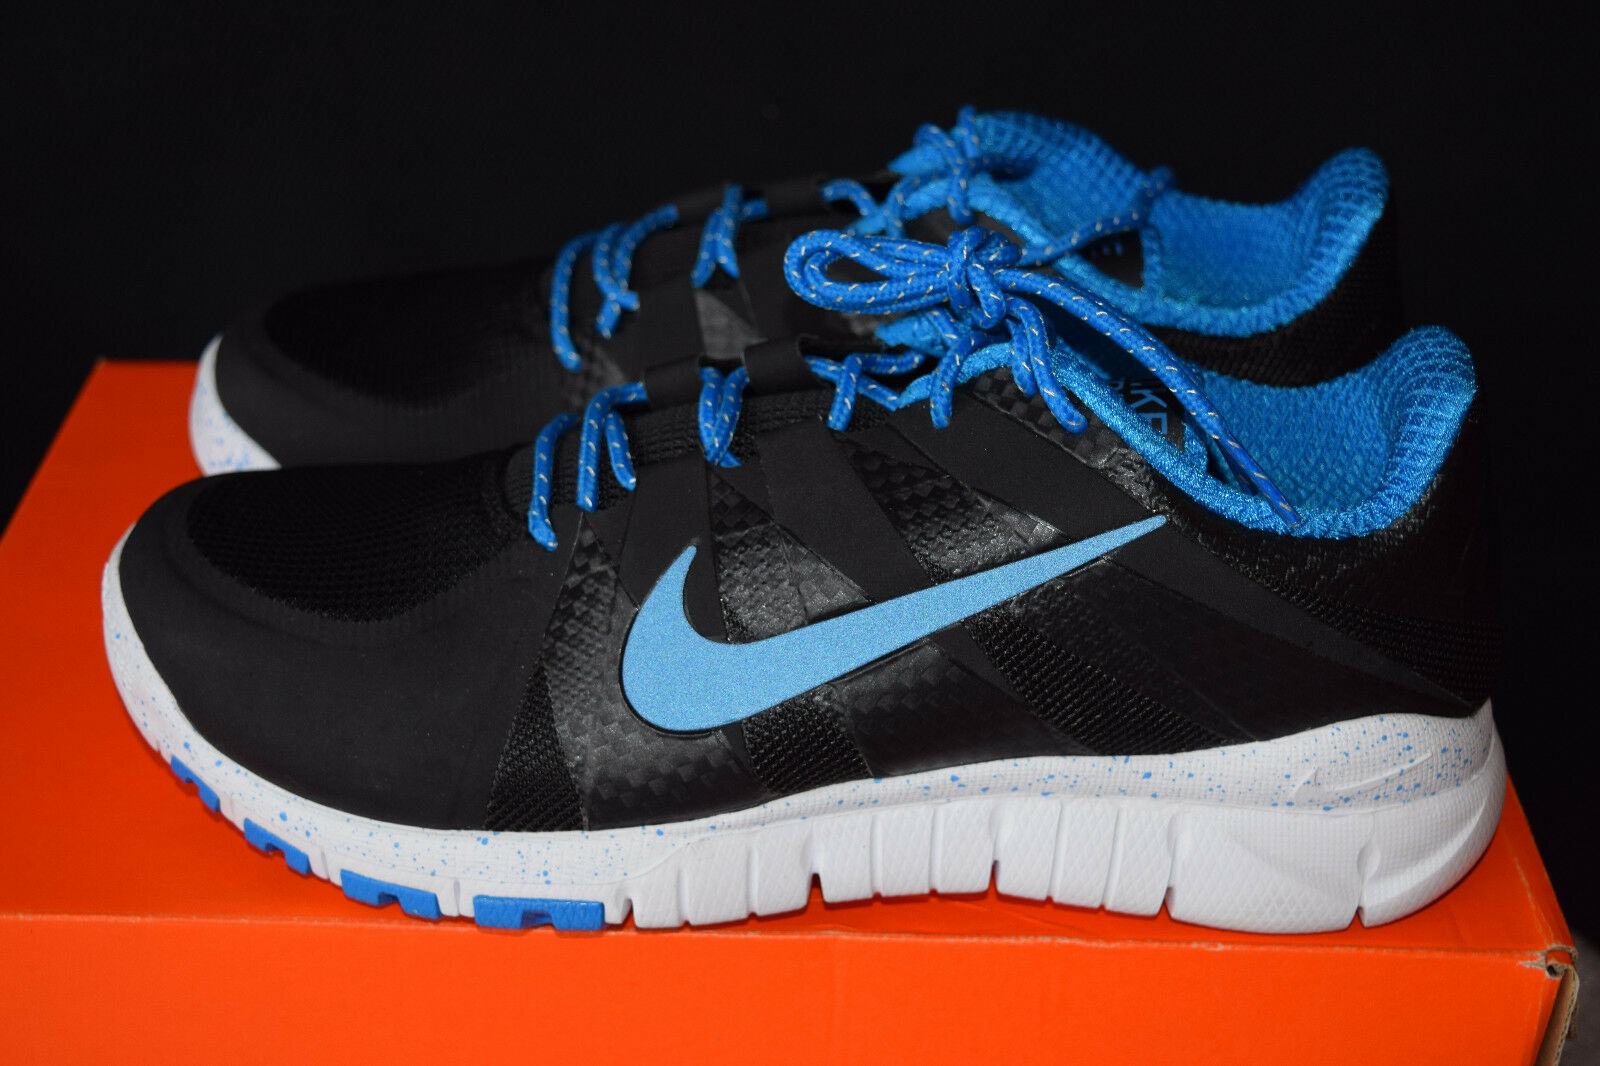 Nike Free 5.0 Mens Premium Running Shoes Sz 9 Black, Cobalt, White